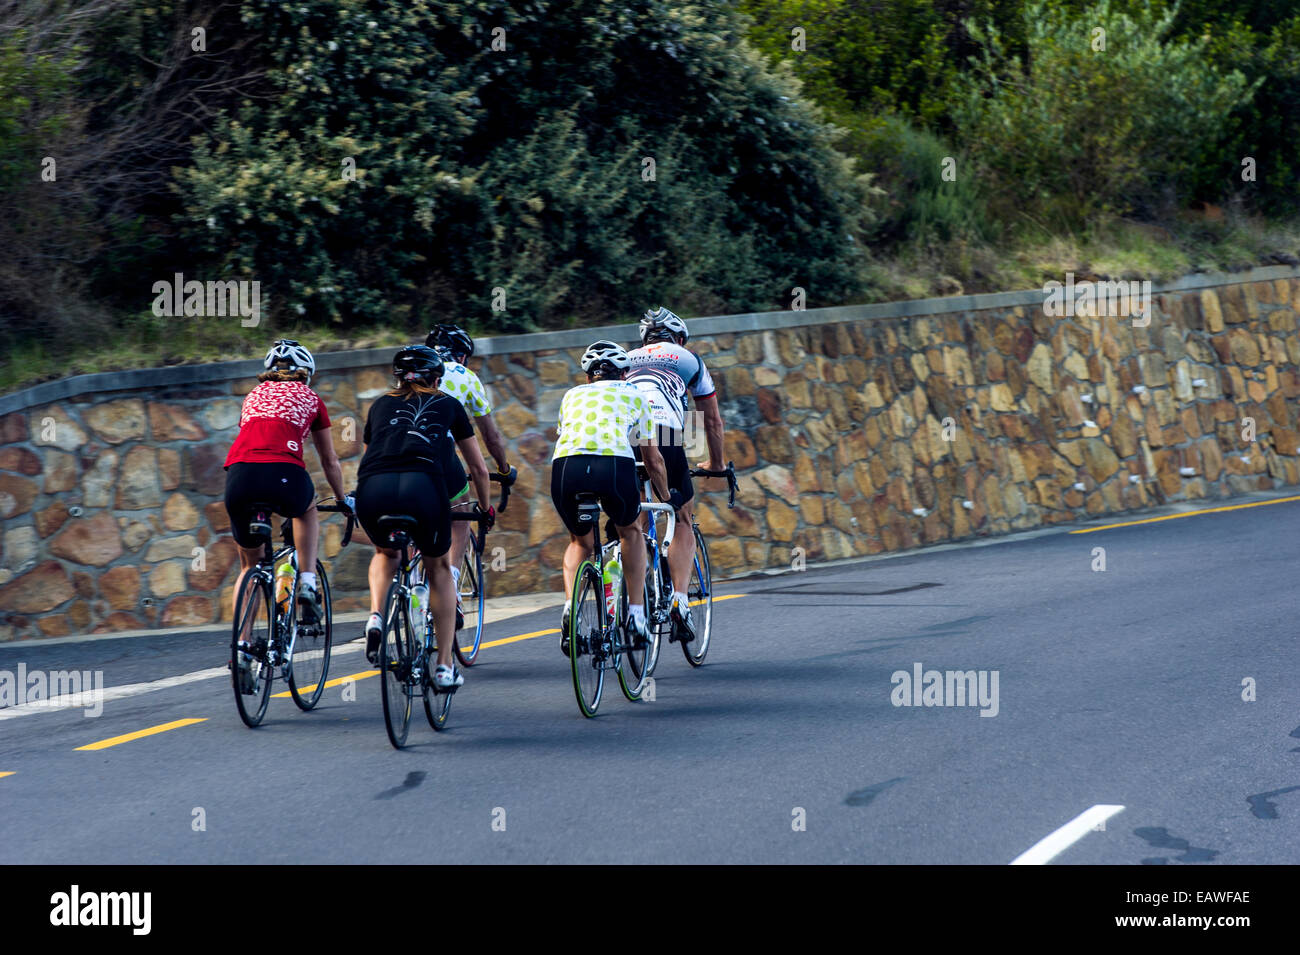 Cyclists speed down a winding coastal road on their racing bikes. - Stock Image